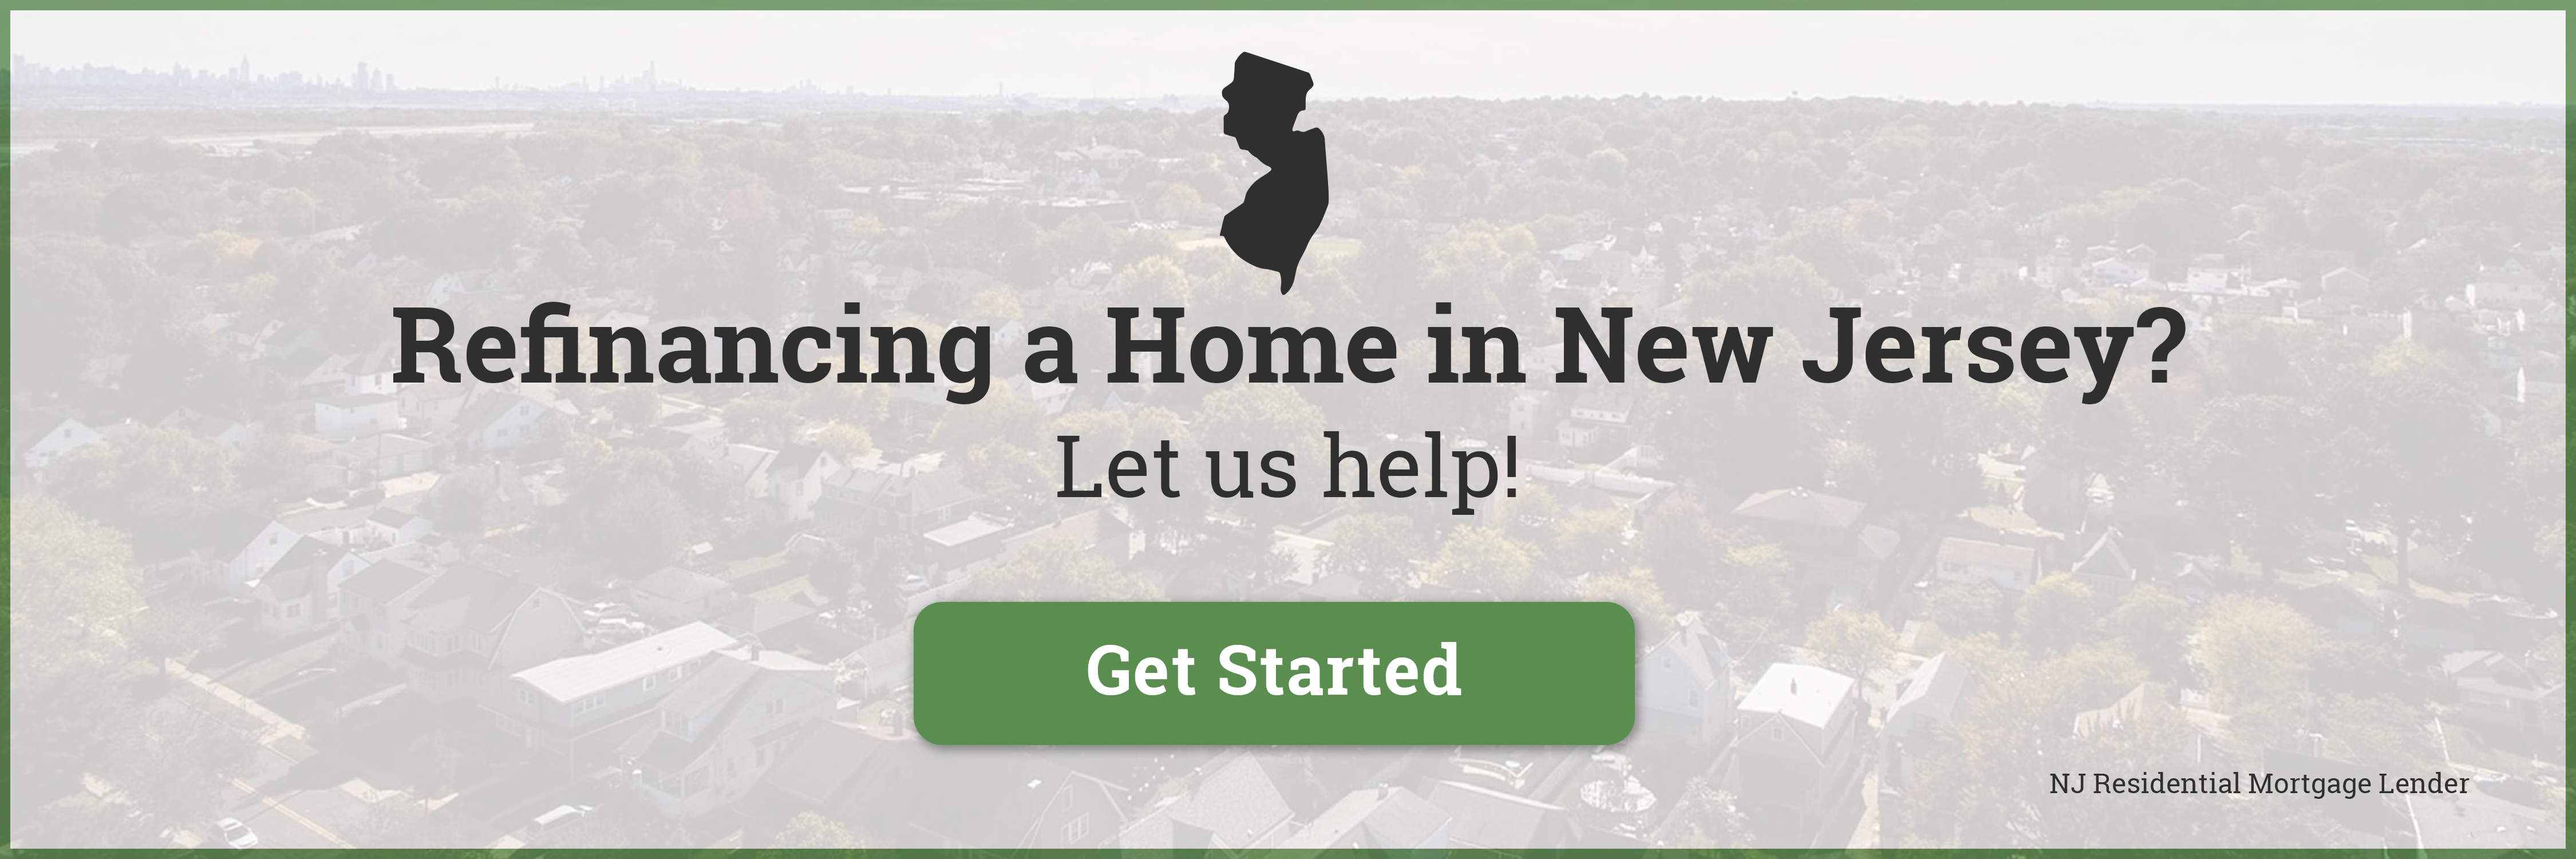 Refinancing a Home in New Jersey?